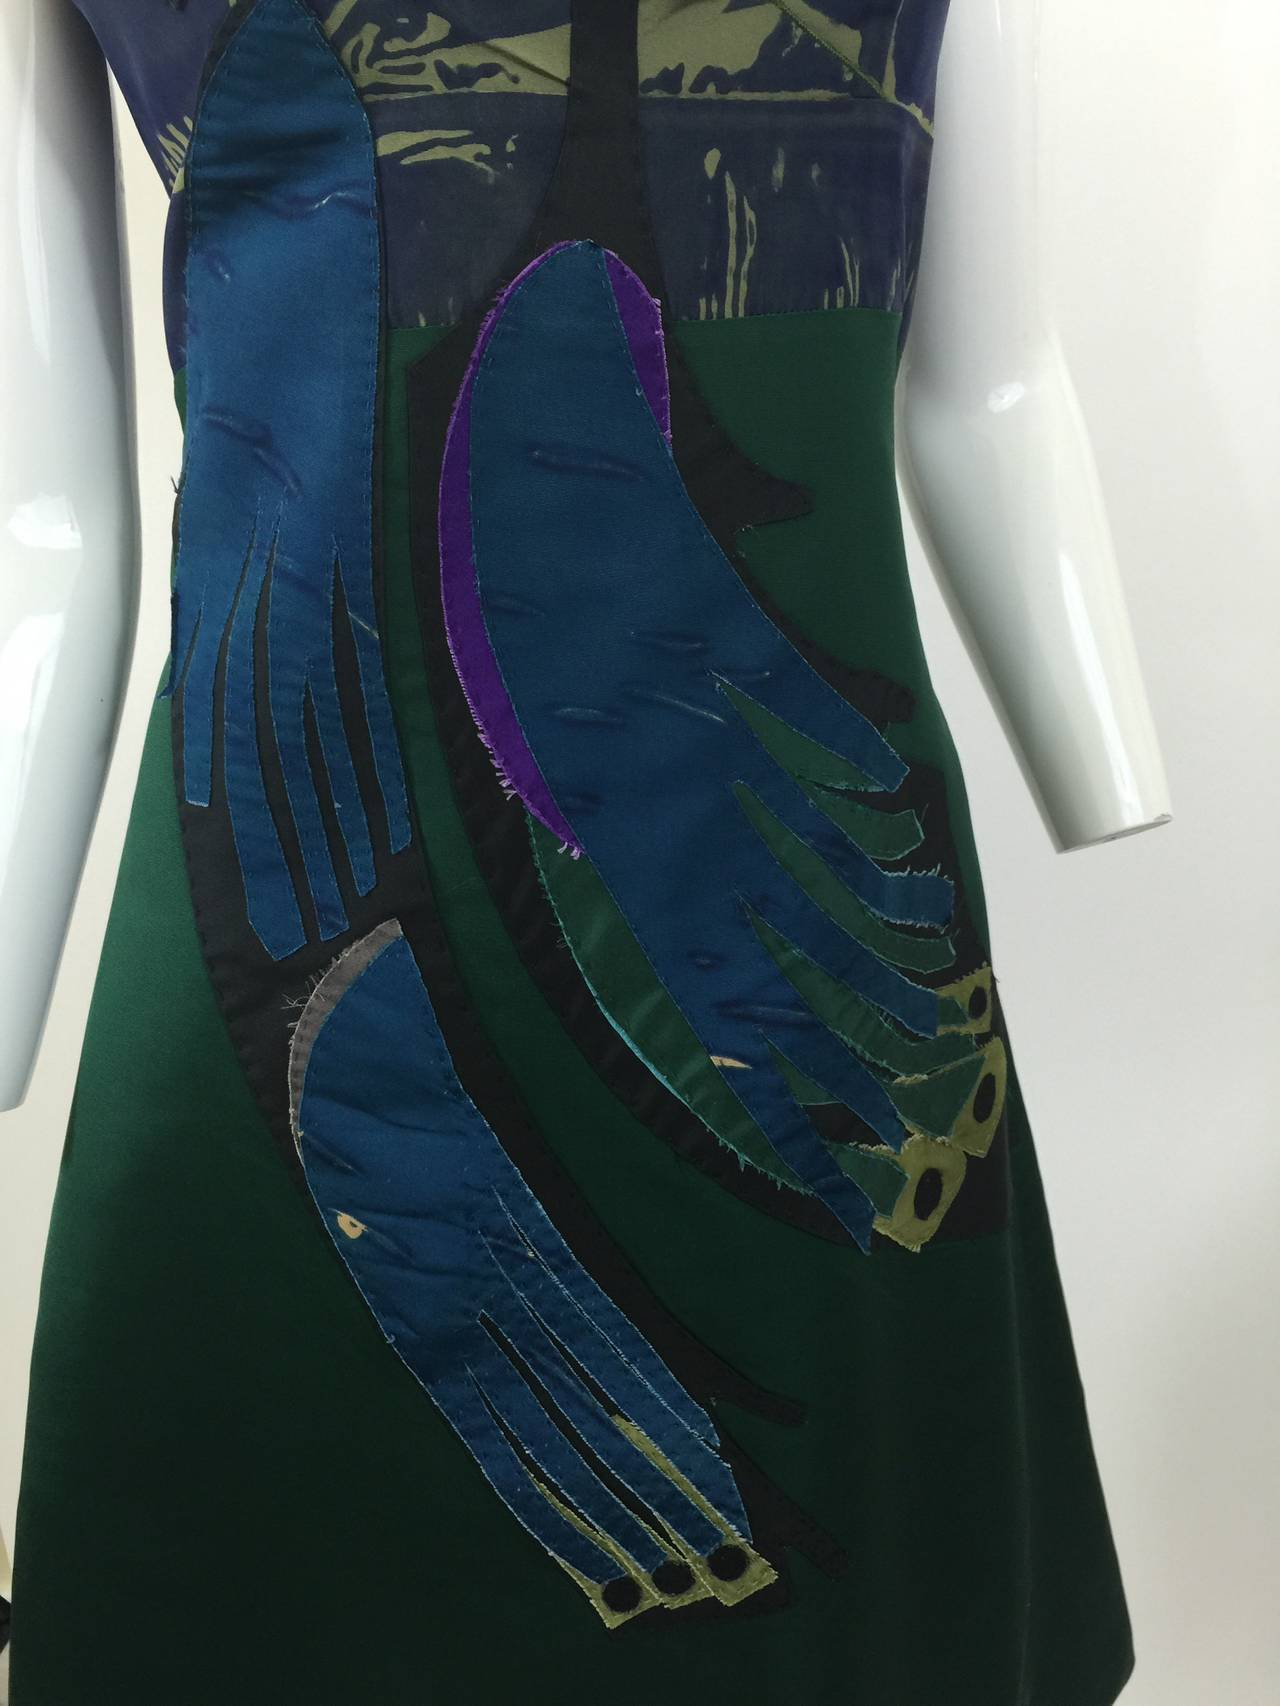 Blue Prada Spring  2005 Runway Look 53 Parrot Dress For Sale